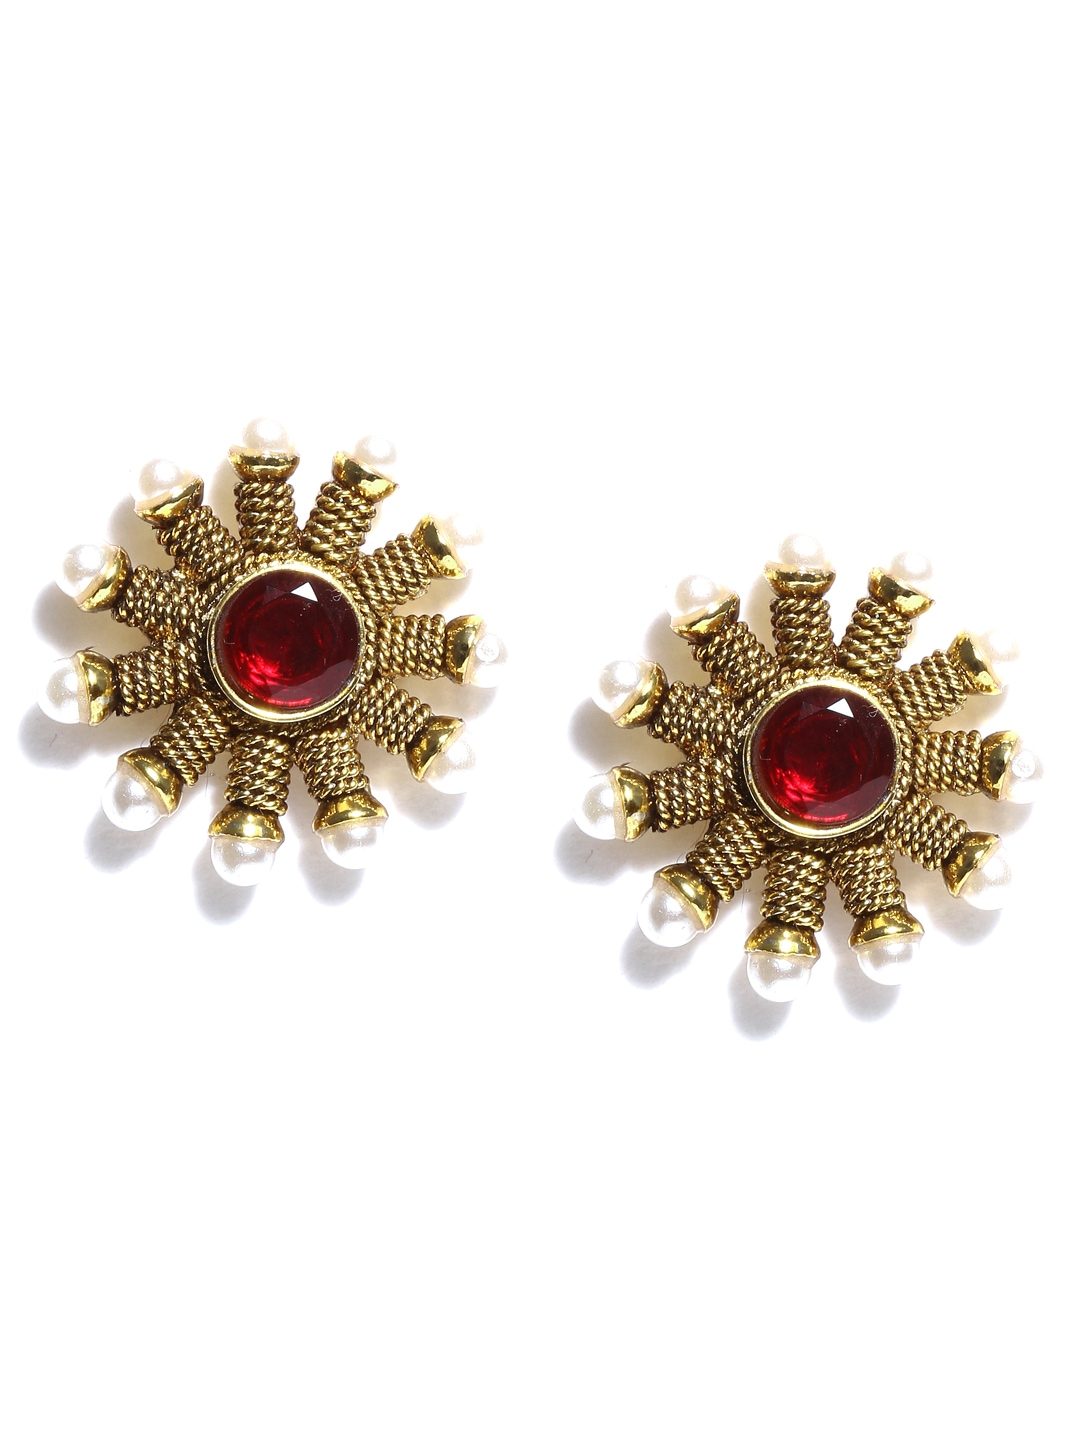 Myntra Blissdrizzle Gold Toned & Maroon Stud Earrings. Pure Platinum Chains. Composite Rings. Sapphire And Diamond Bangle Bracelet. Venetian Beads. 18 Karat Gold Bracelet. Cat Bracelet. Stackable Bangle Bracelets. Estate Style Engagement Rings